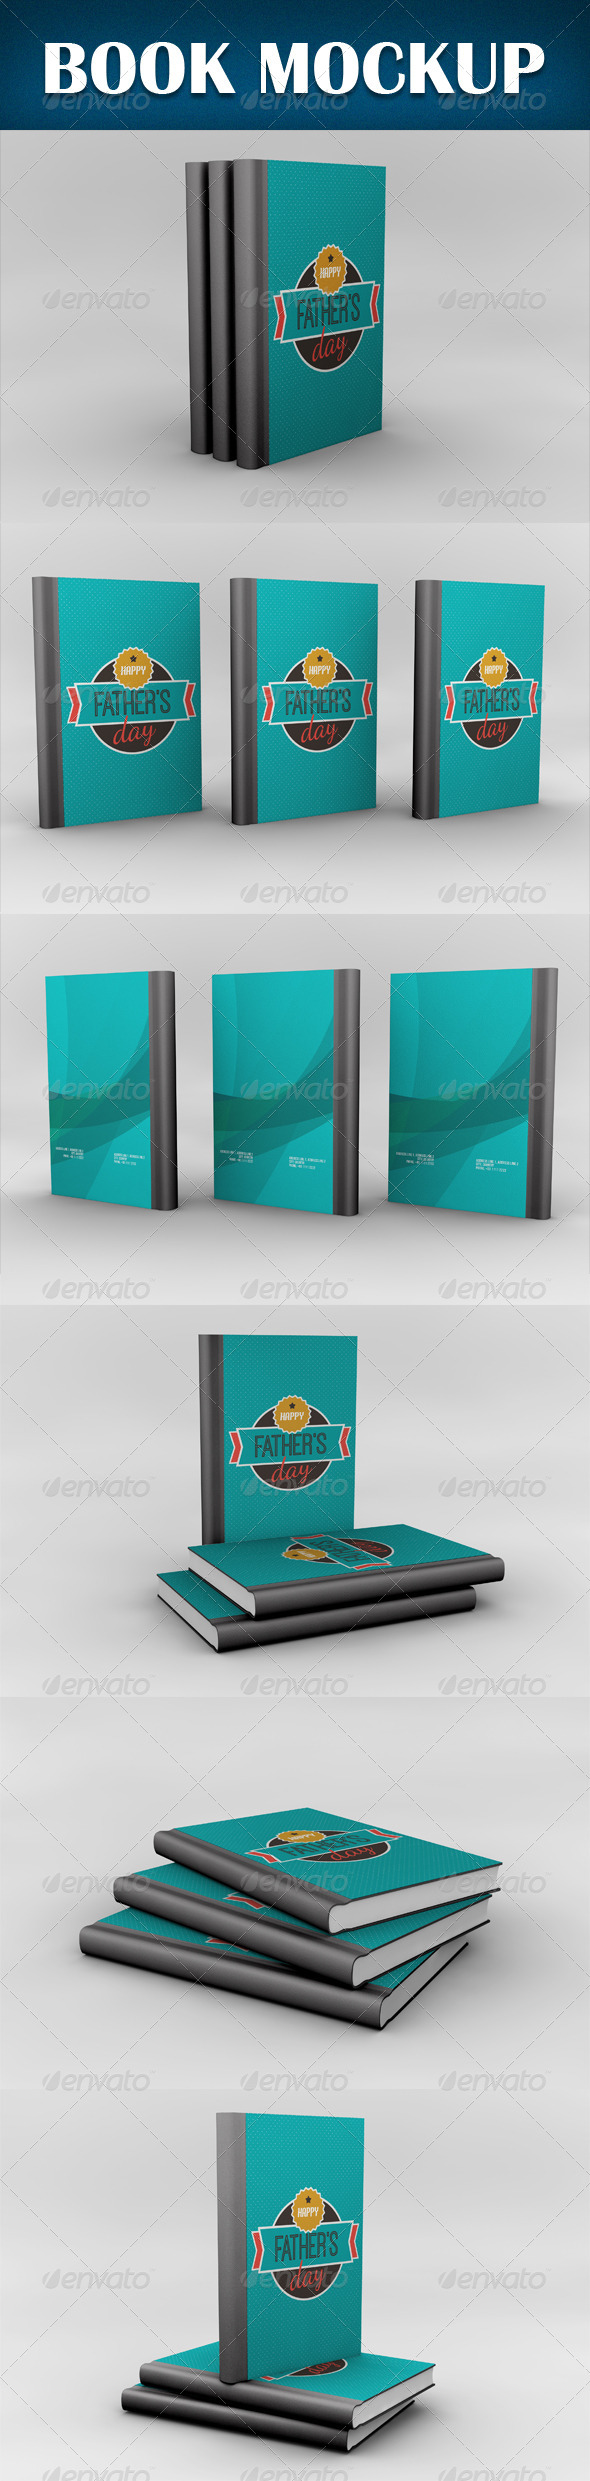 GraphicRiver Book Mockup 8317204